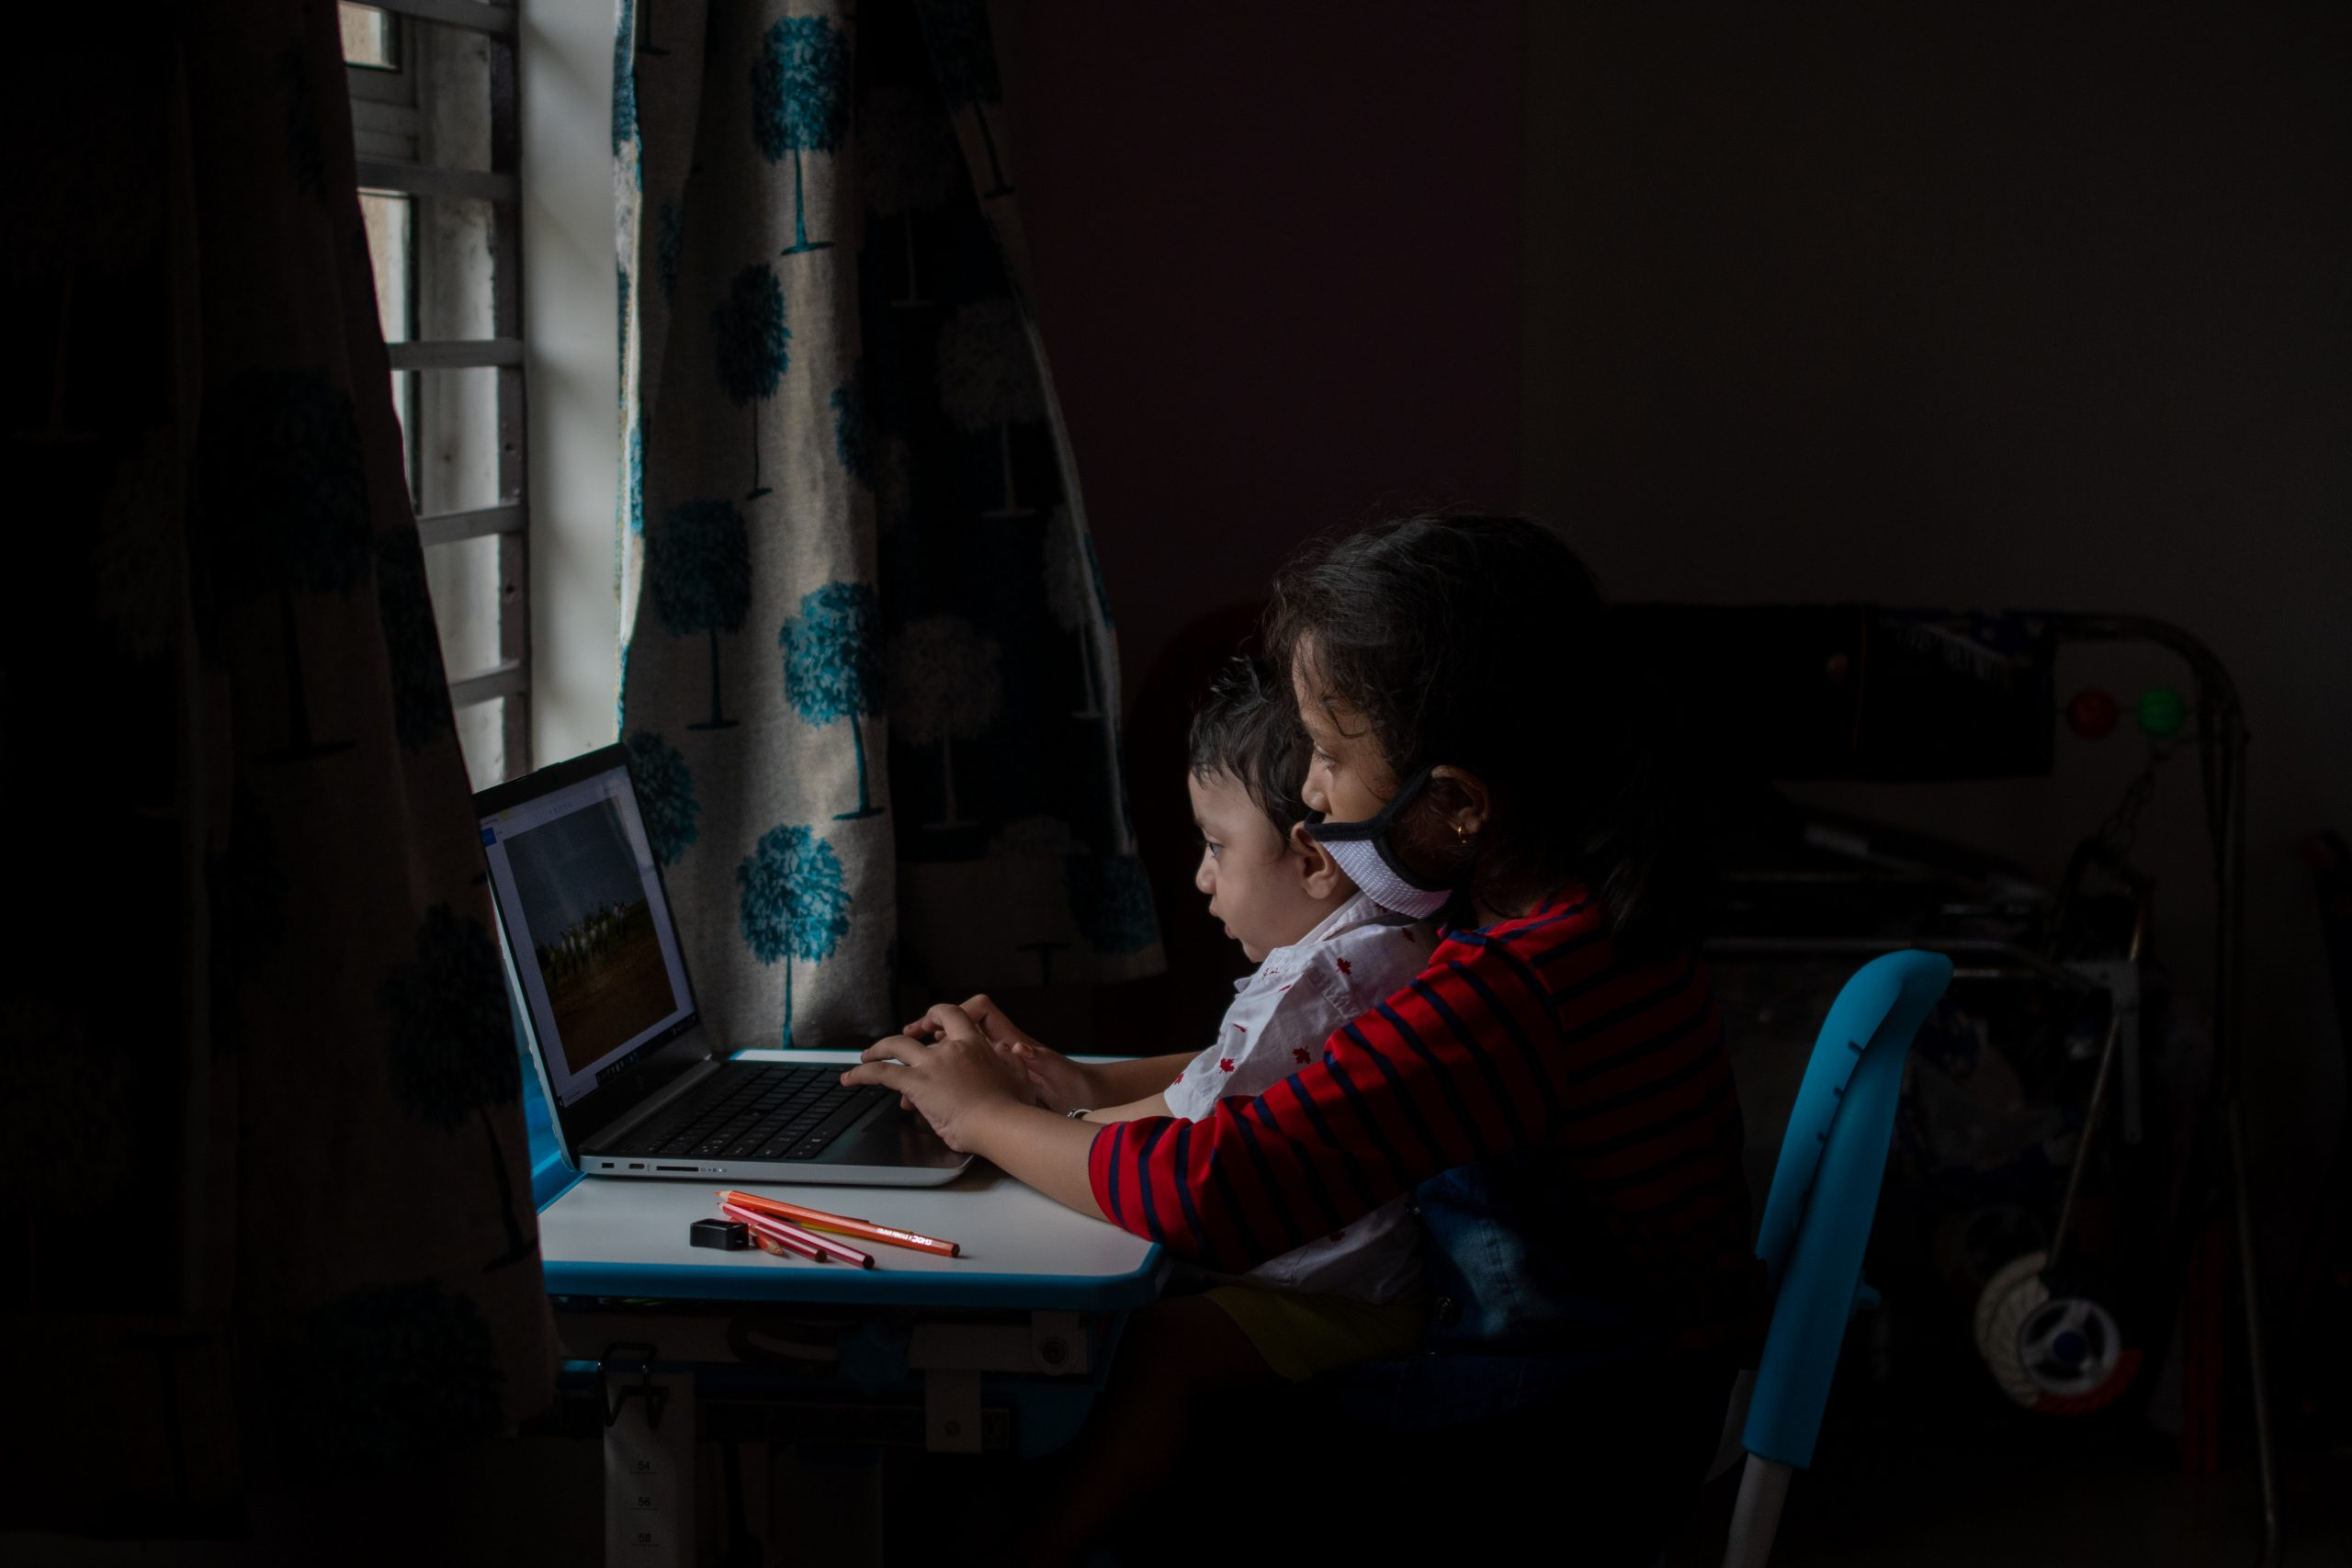 A mother teaching computer to a kid